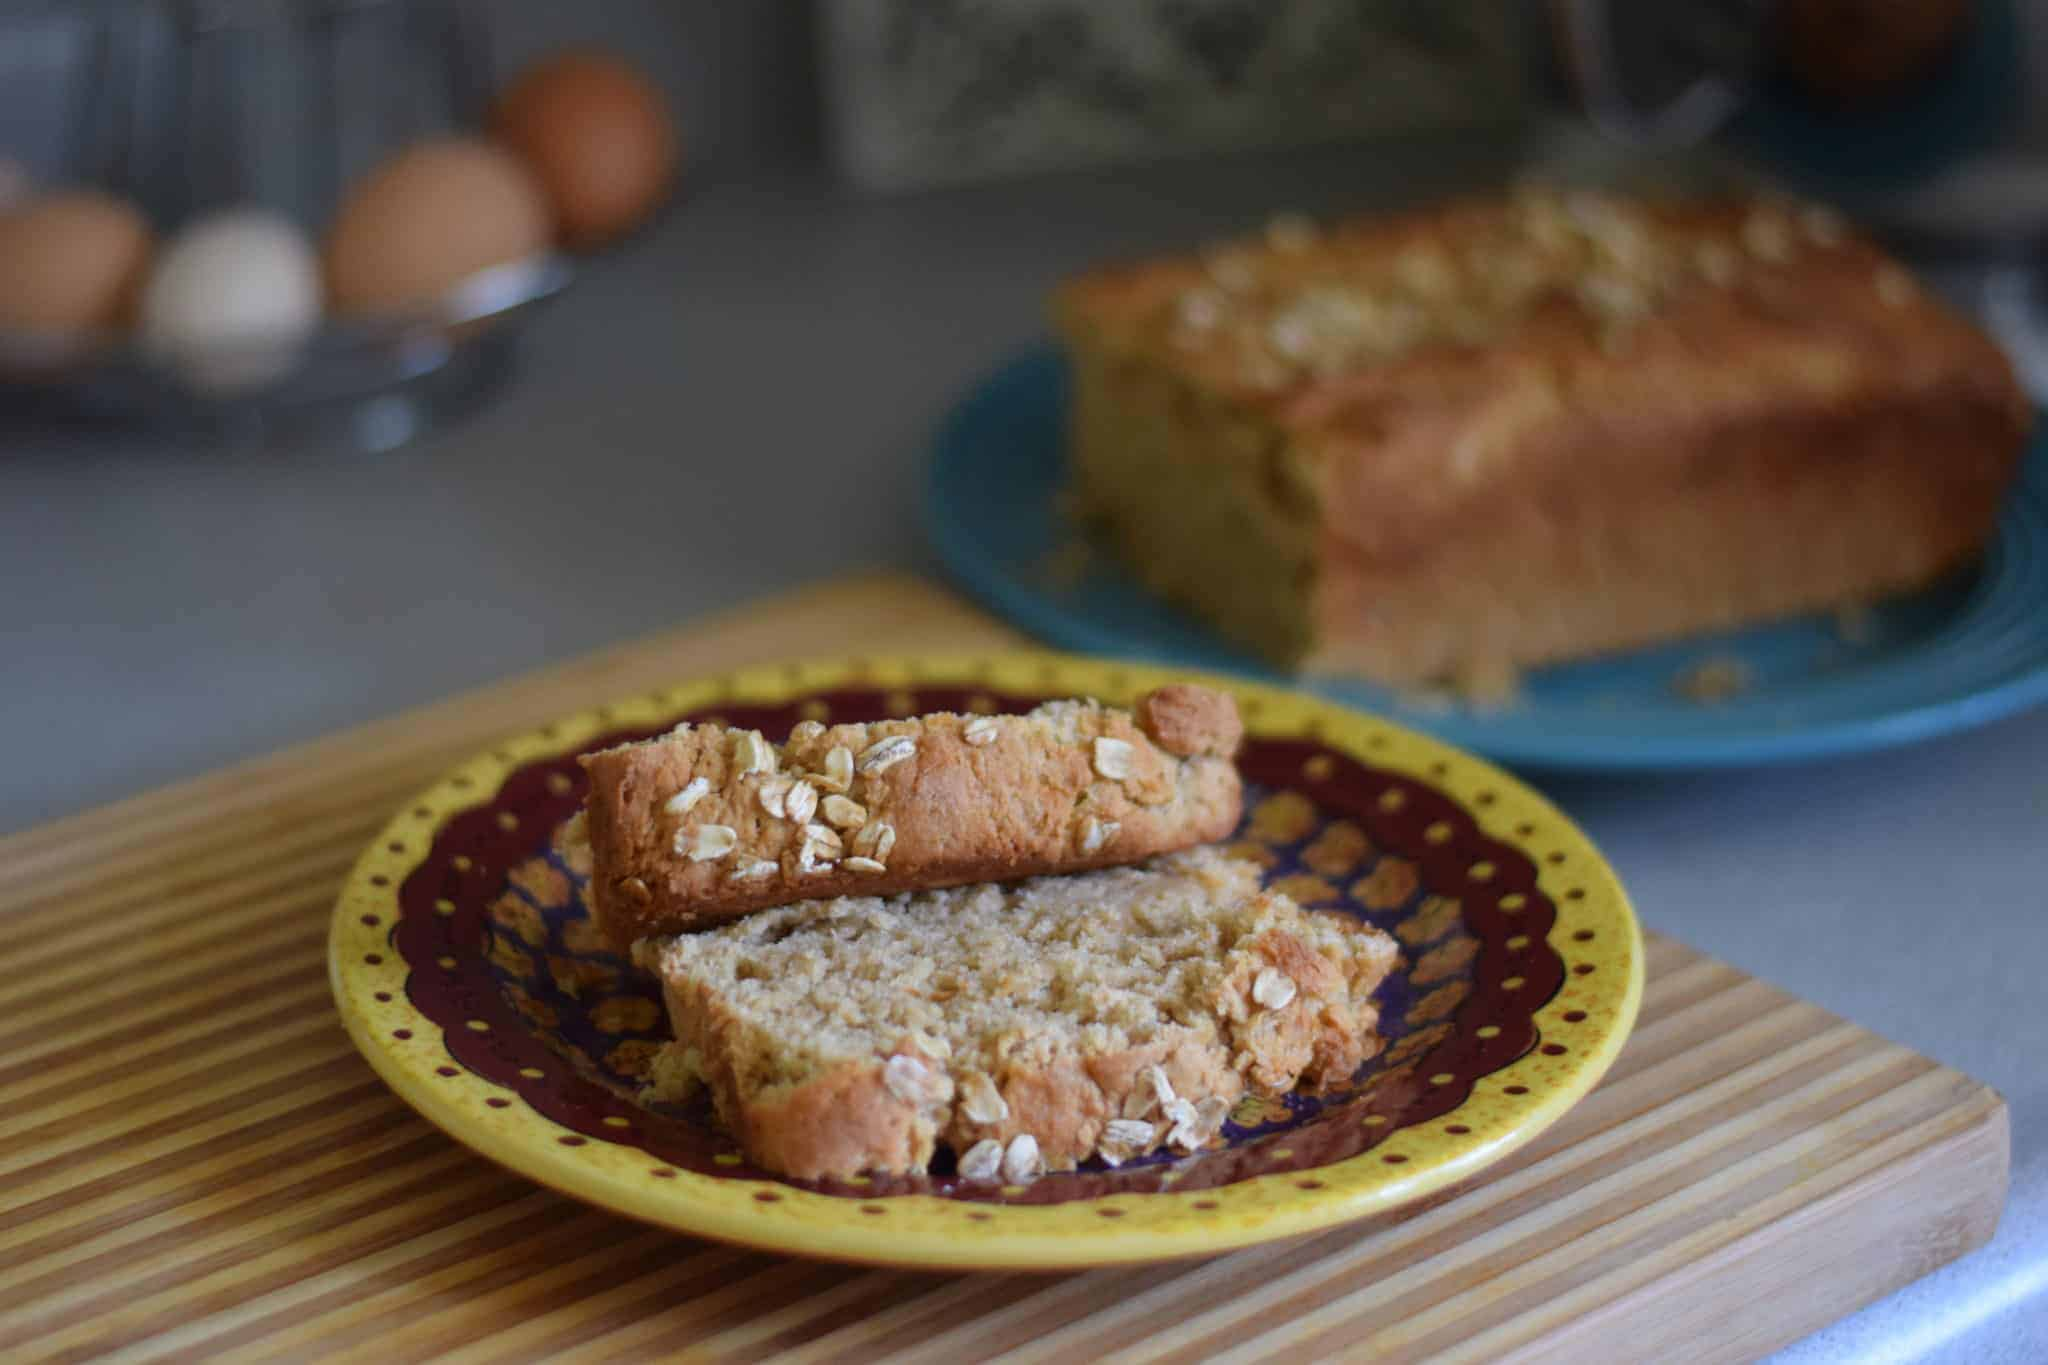 fresh baked bread loaf and slices of bread on a plate